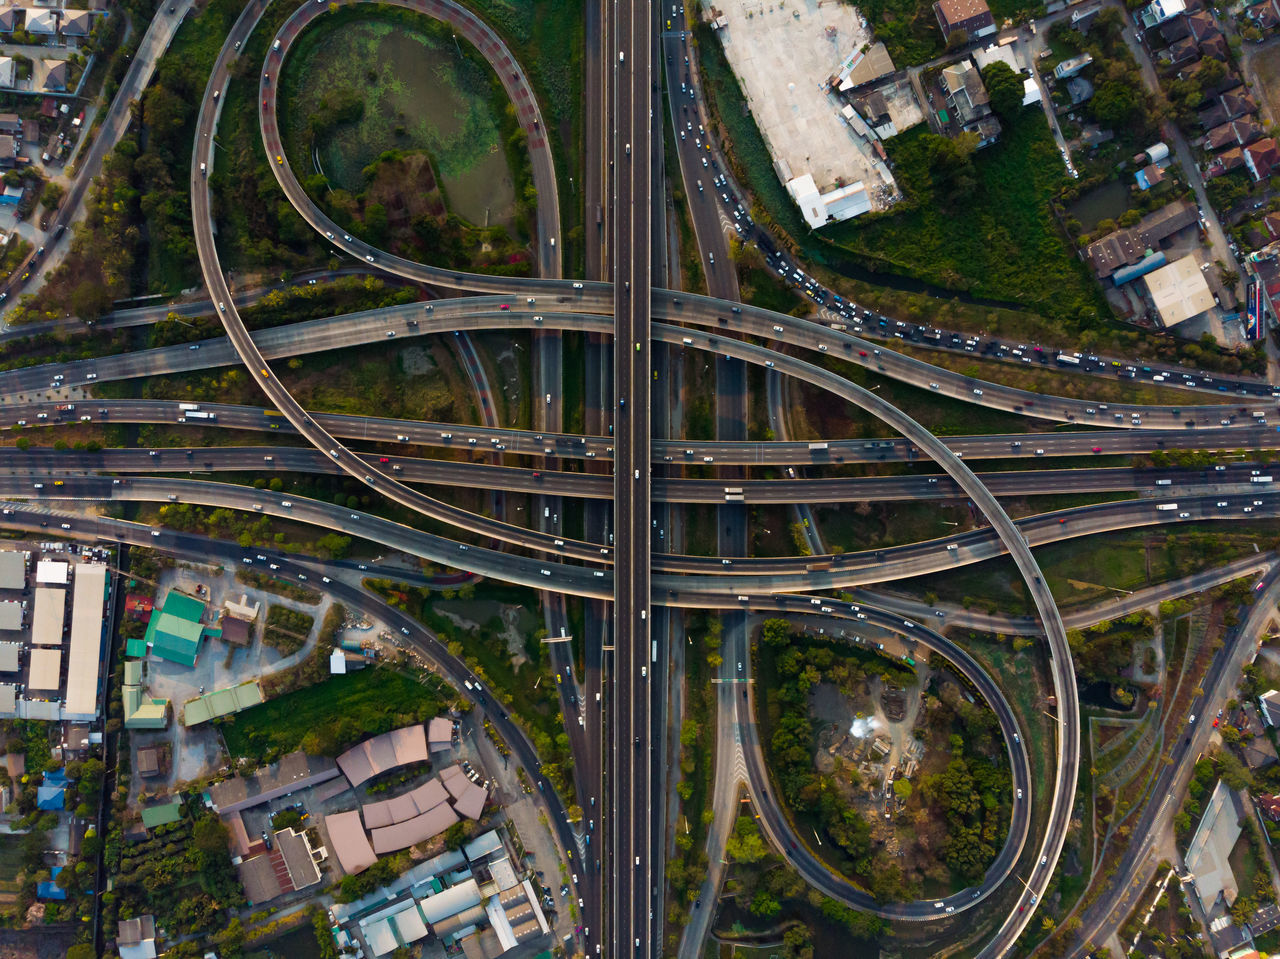 architecture, built structure, building exterior, city, no people, high angle view, road, transportation, connection, day, building, street, bridge, outdoors, aerial view, cityscape, city life, bridge - man made structure, mode of transportation, nature, multiple lane highway, complexity, overpass